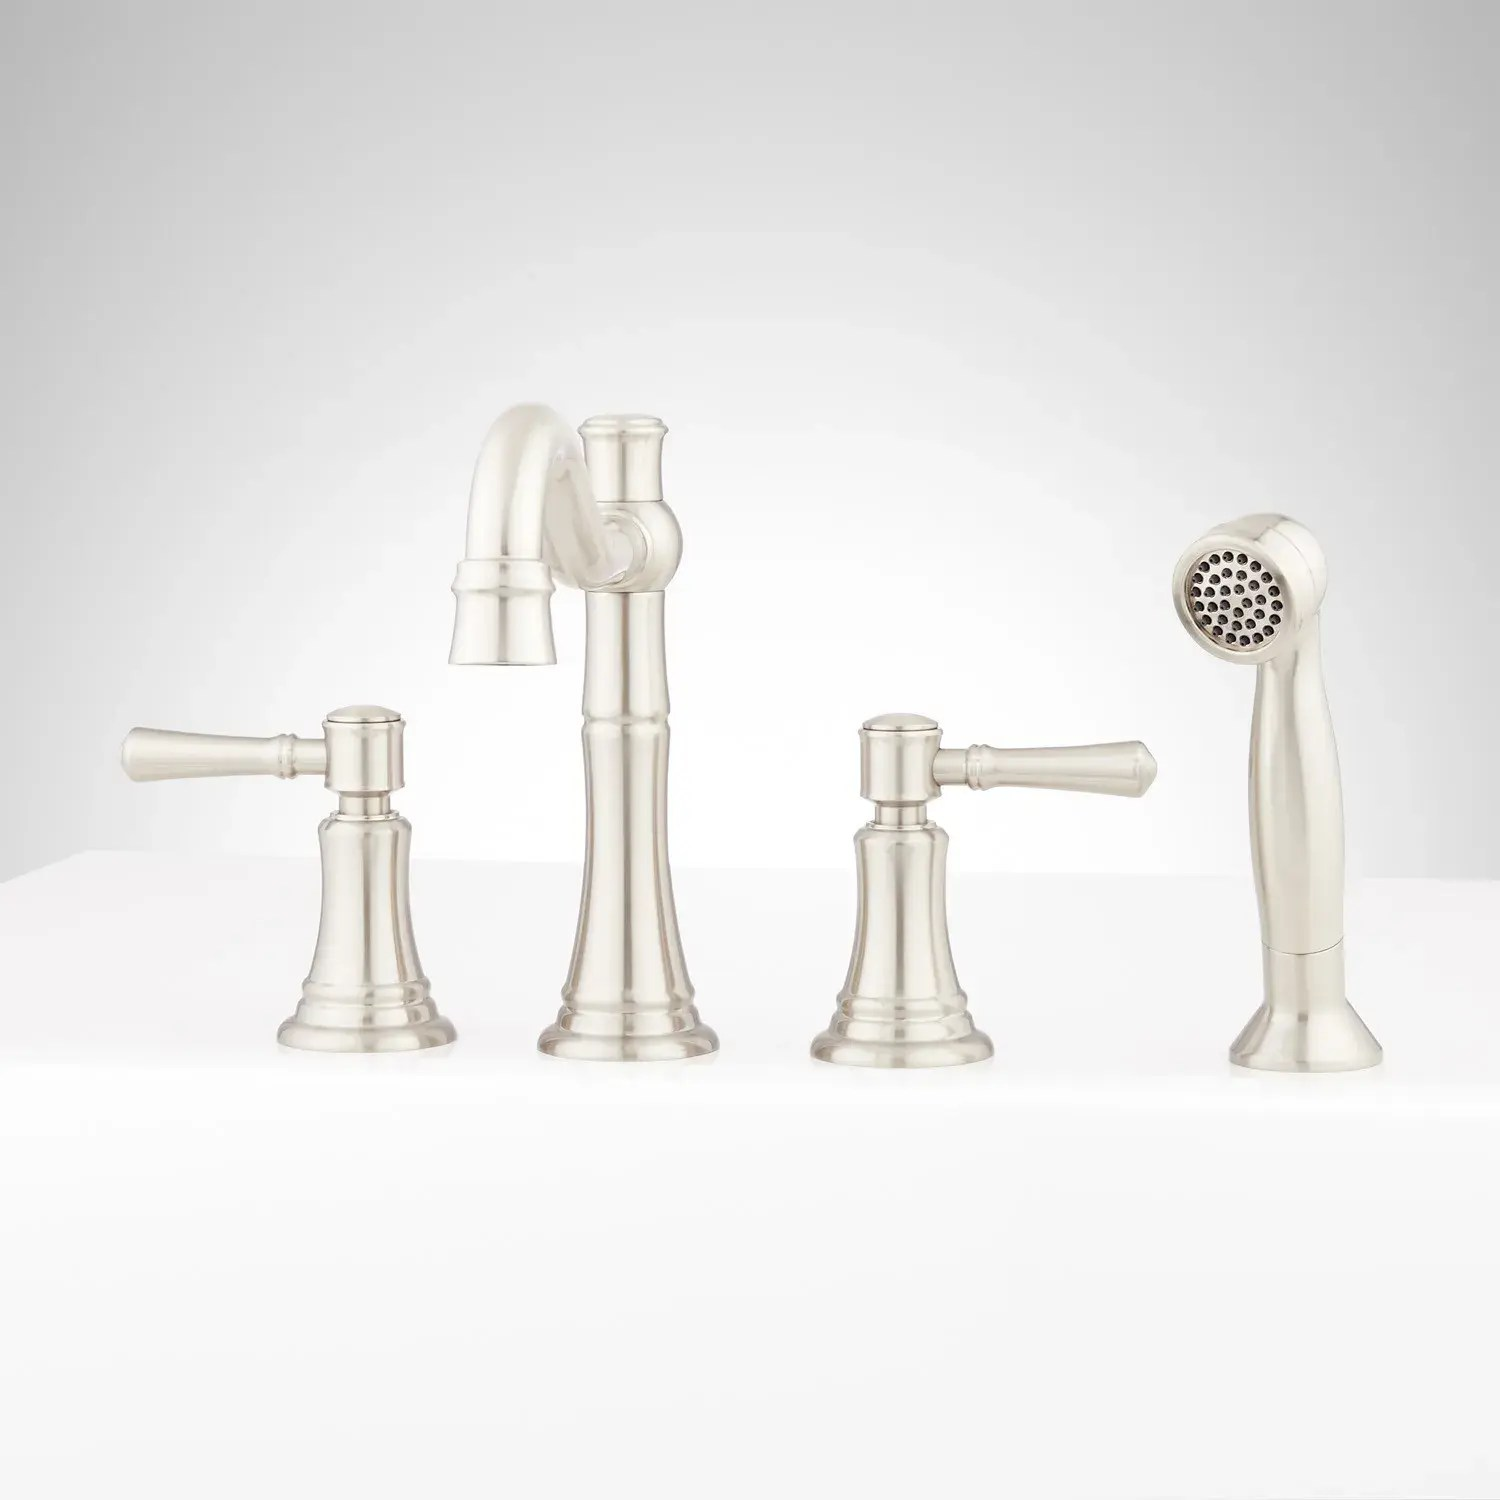 st martin 4 hole roman tub faucet and hand shower